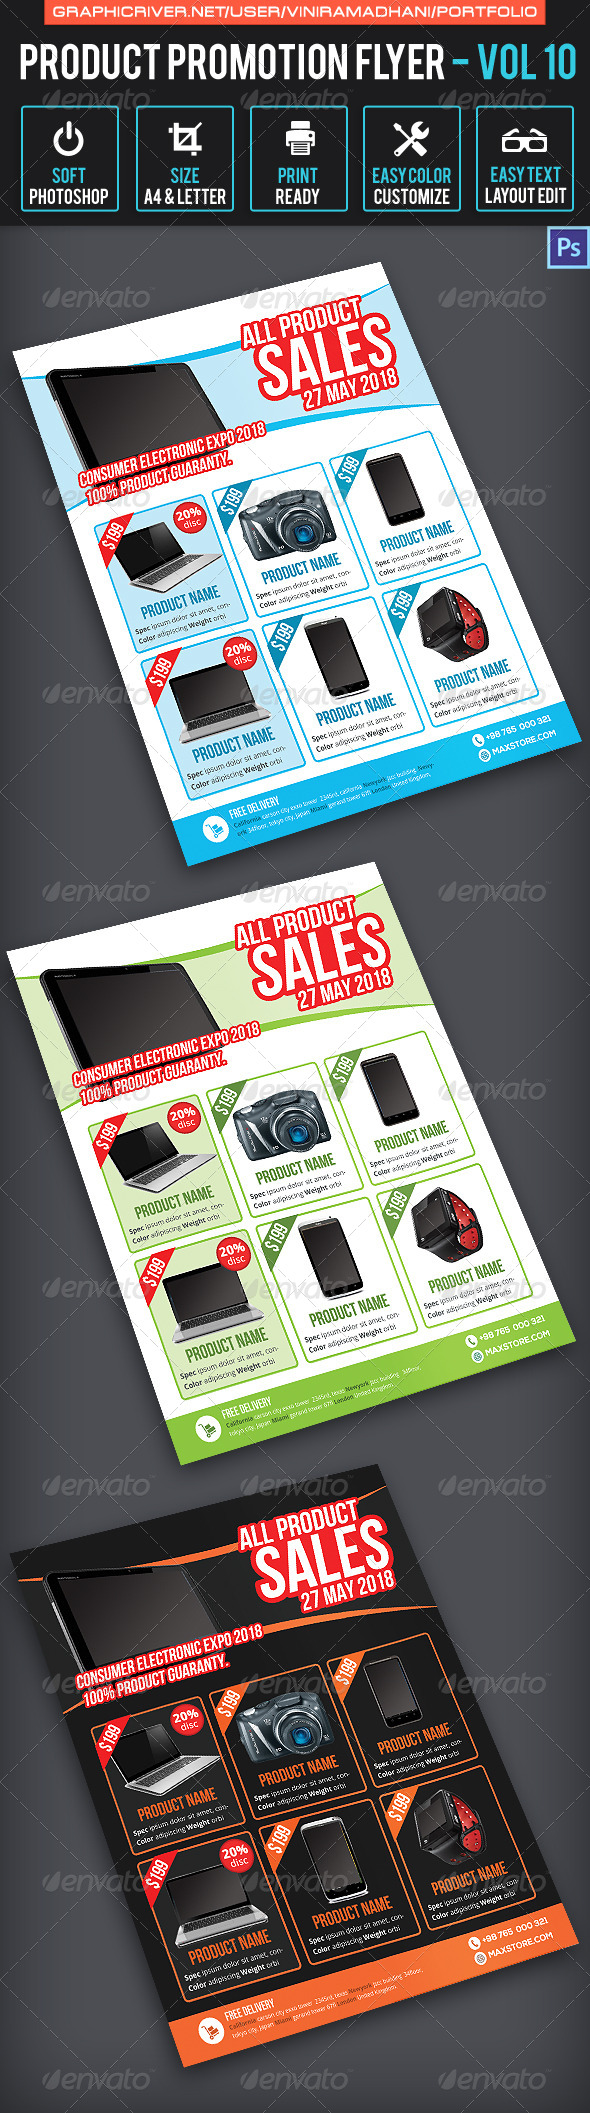 GraphicRiver Product Promotion Flyer Volume 10 7658076